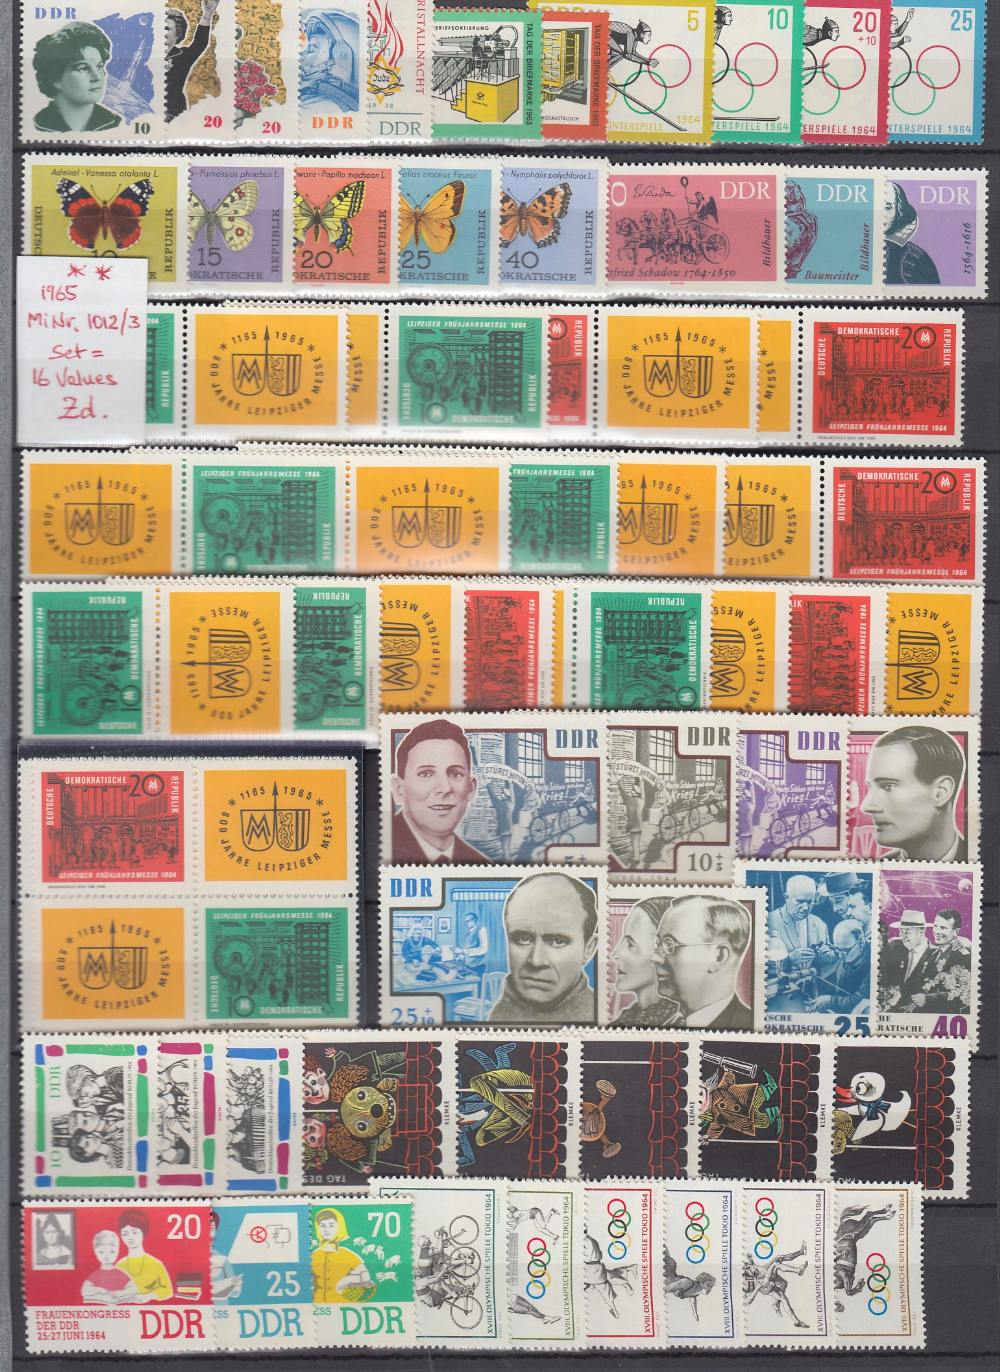 STAMPS GERMANY Large green stockbook 1949 - 1990 unmounted mint and fine used, including minisheets, - Image 3 of 3